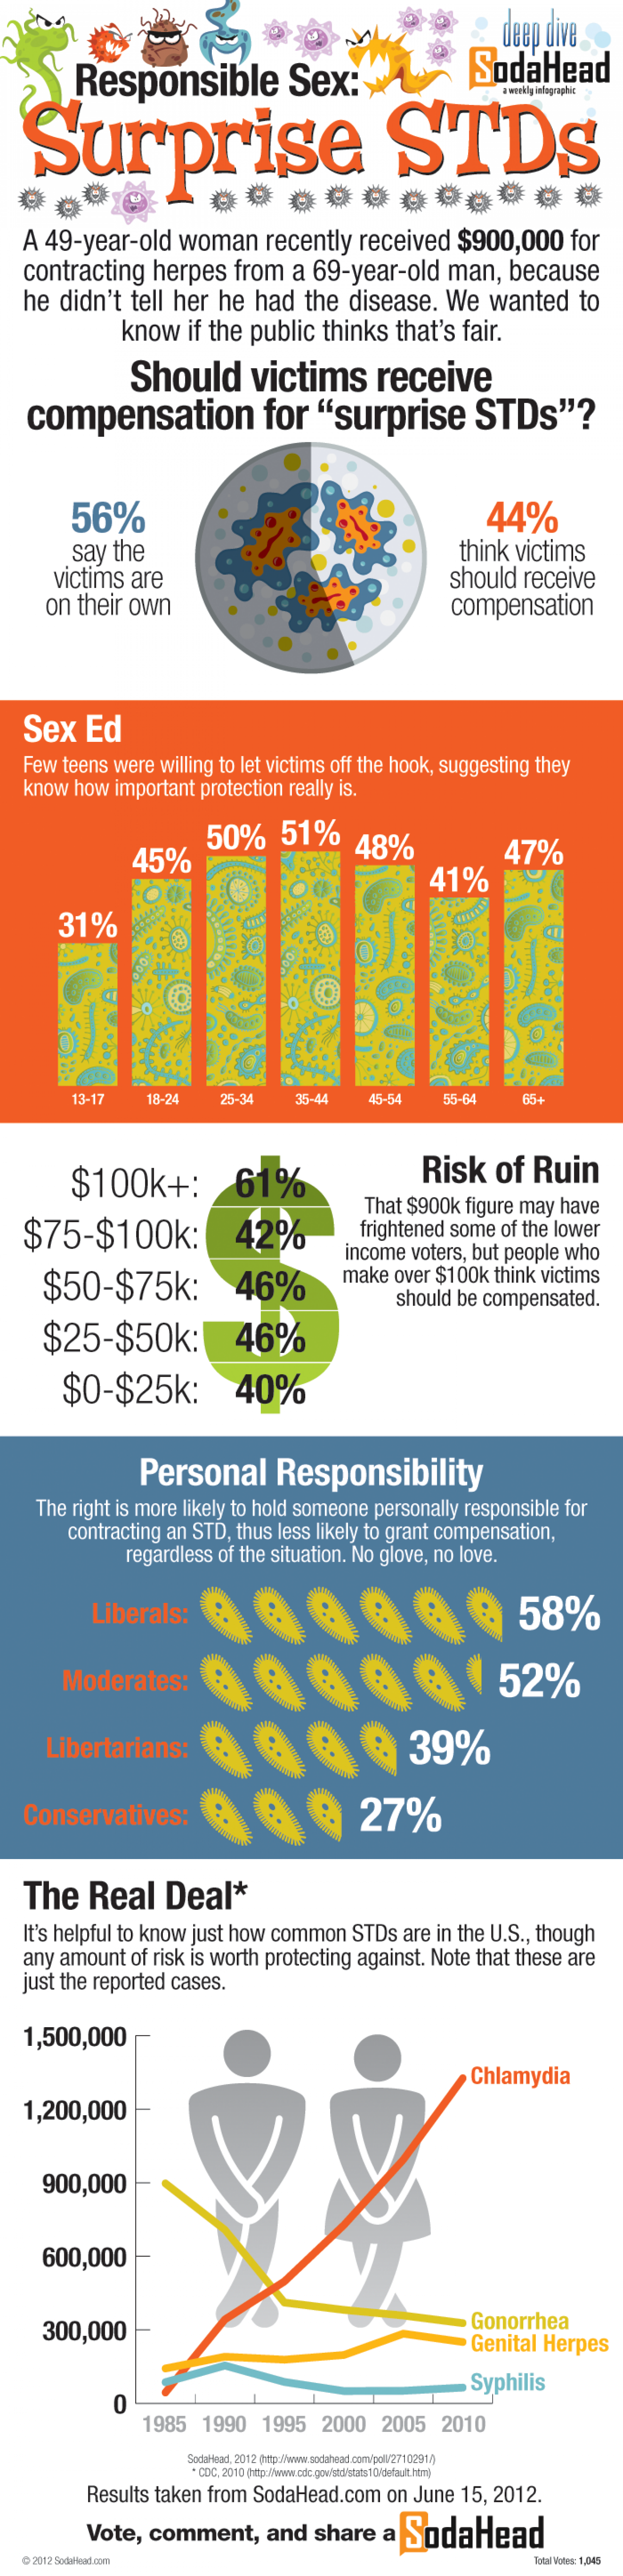 The Public Rejects Compensation for Surprise STDs Infographic